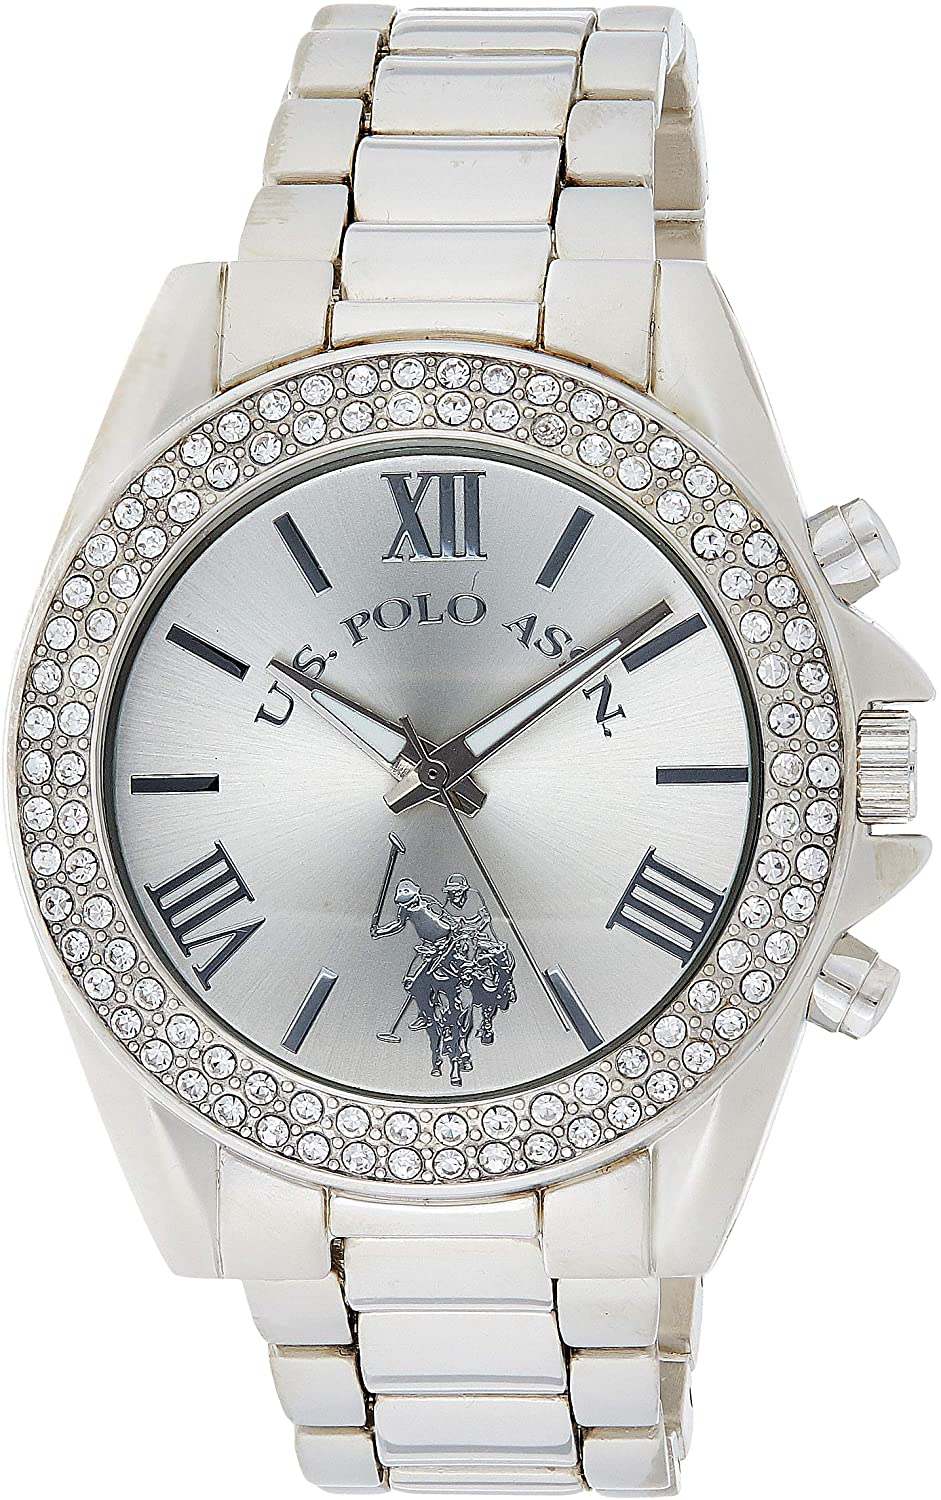 U.S. Polo Assn. Women's USC40035 Rhinestone-Accented Silver-Tone Watch